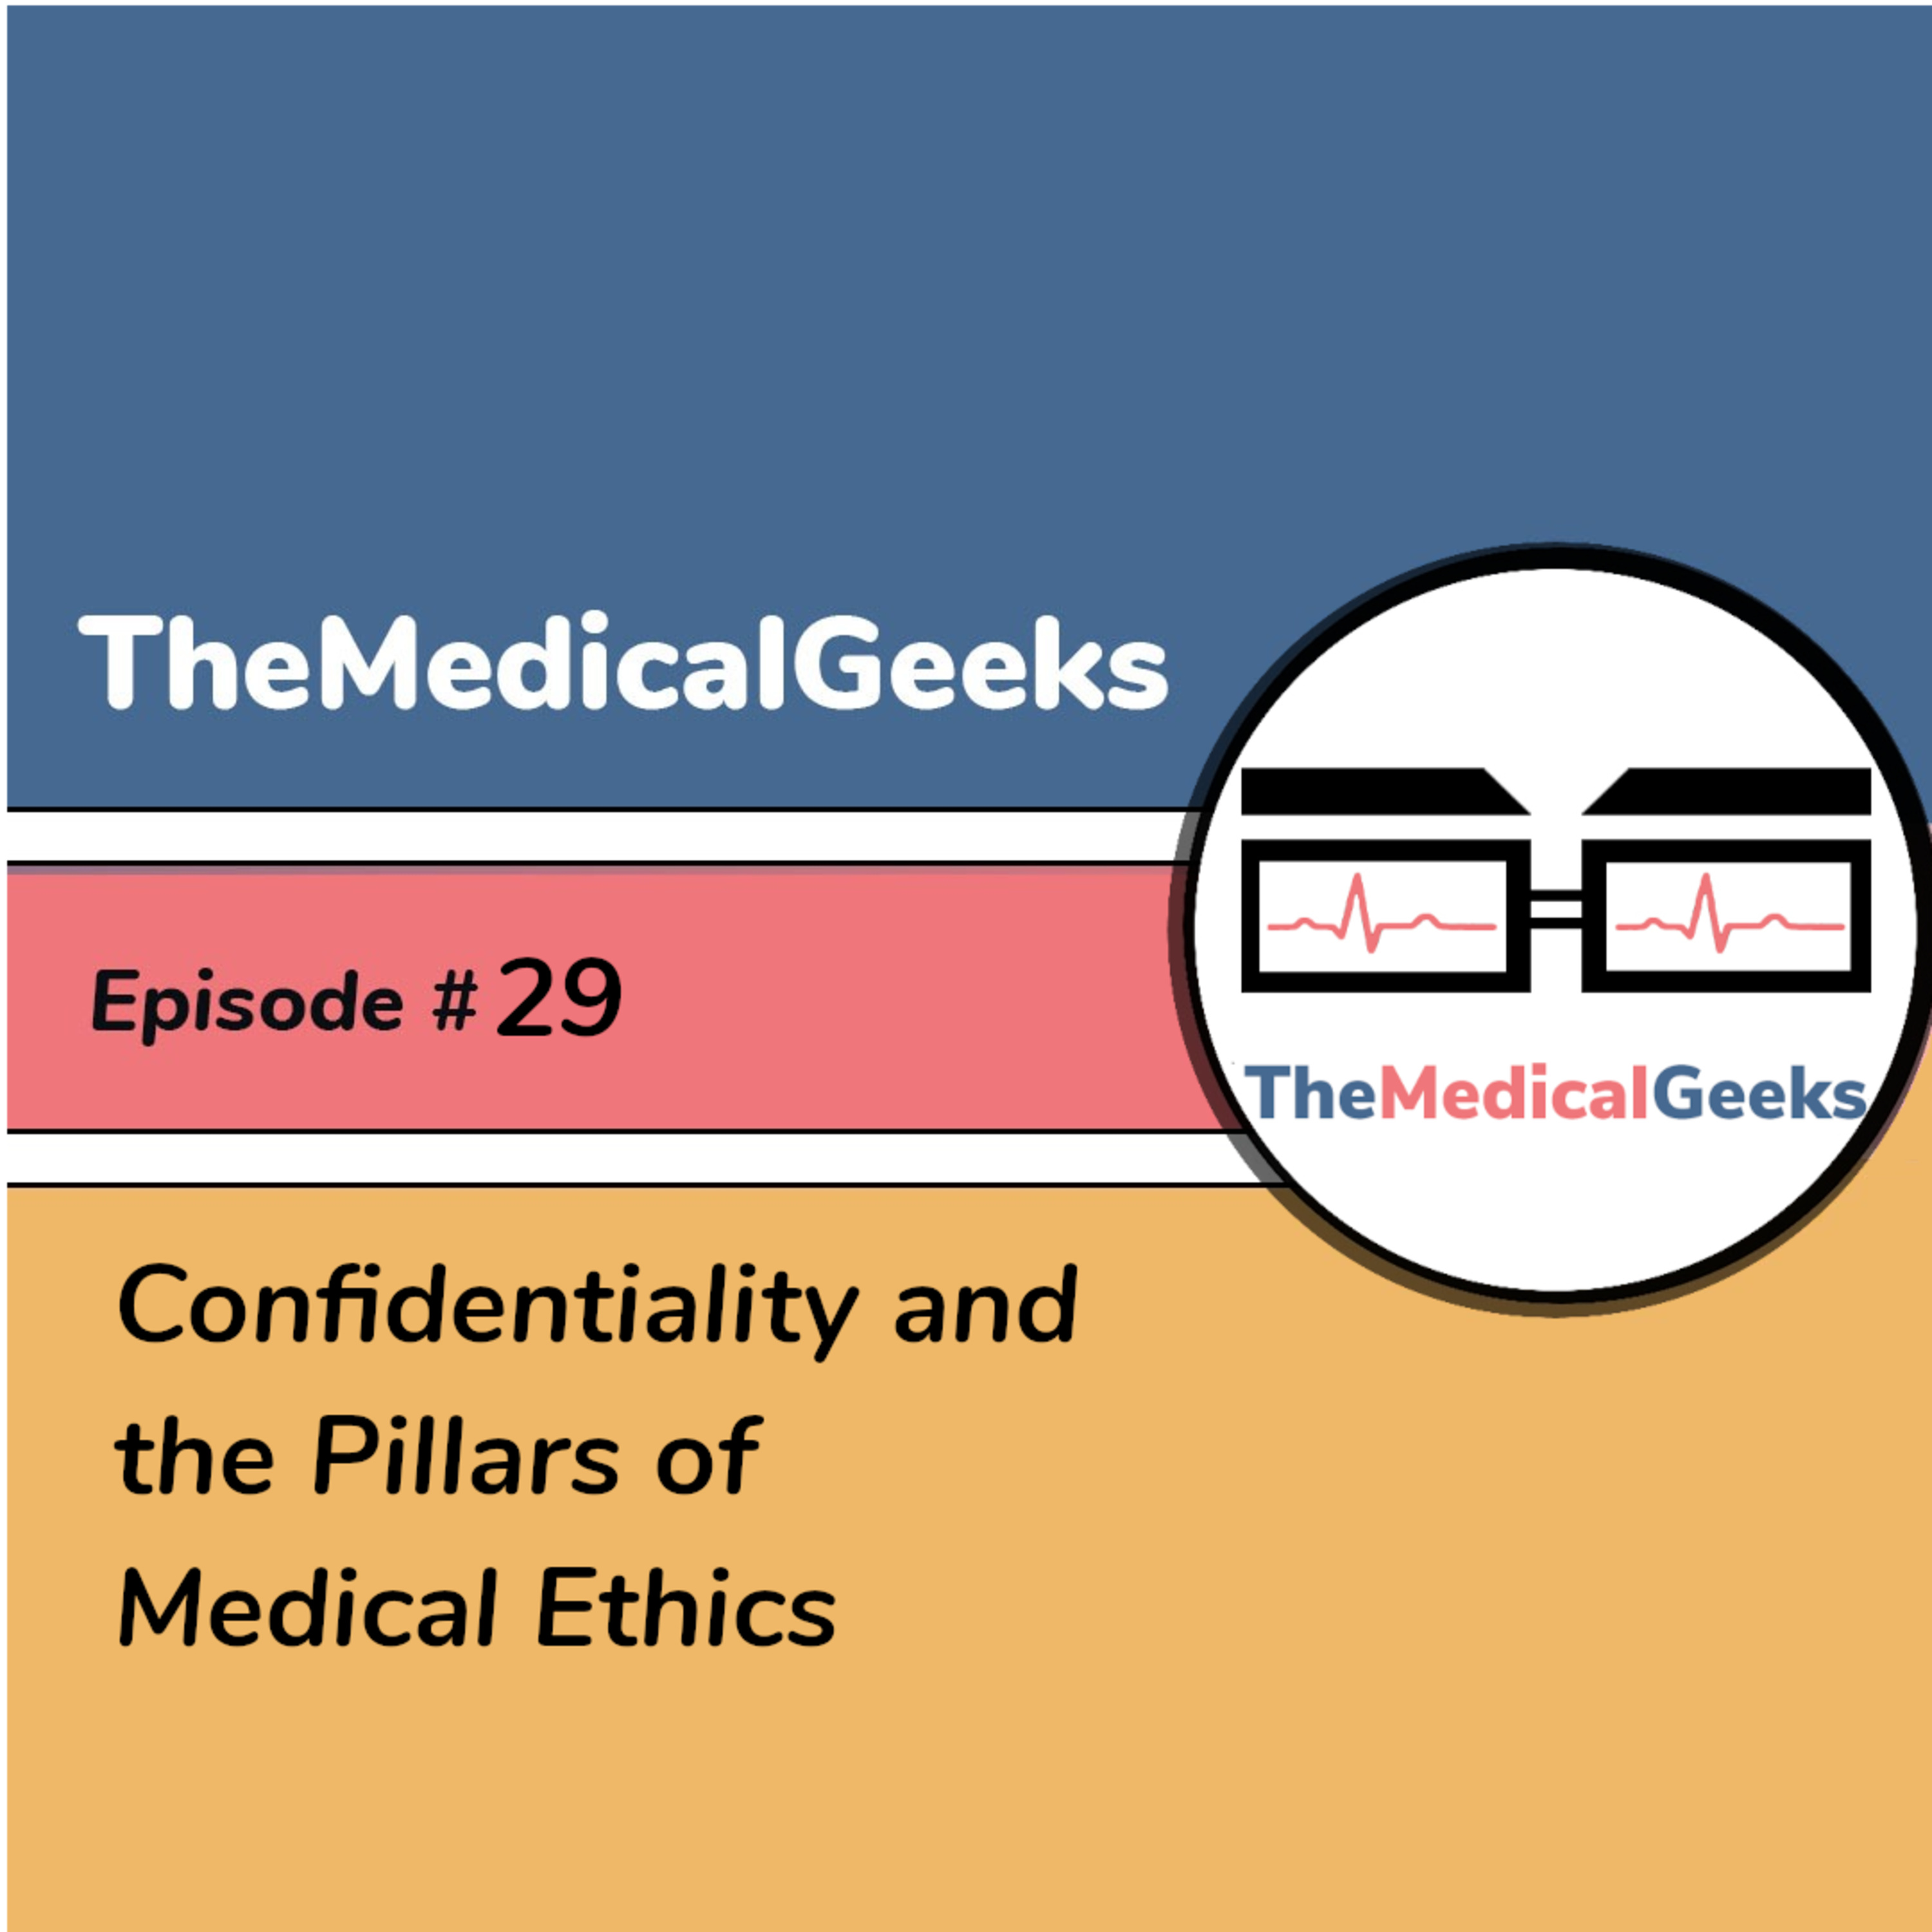 #29 Episode 29: Confidentiality and the Pillars of Medical Ethics